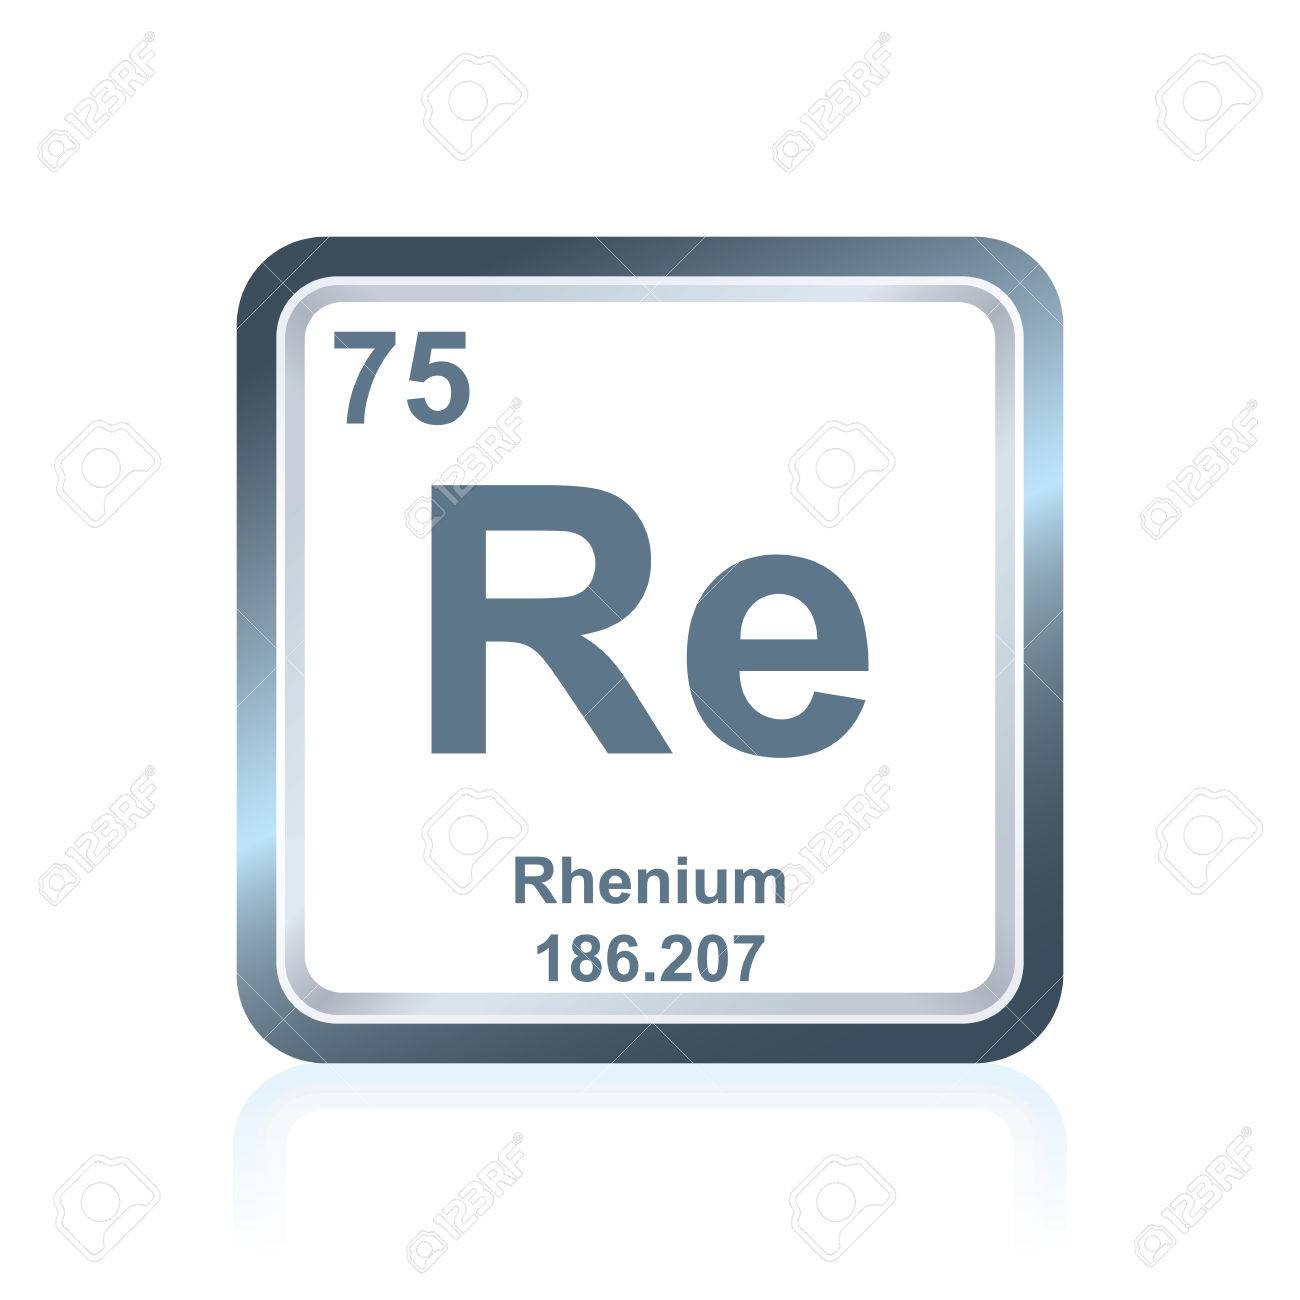 Symbol Of Chemical Element Rhenium As Seen On The Periodic Table